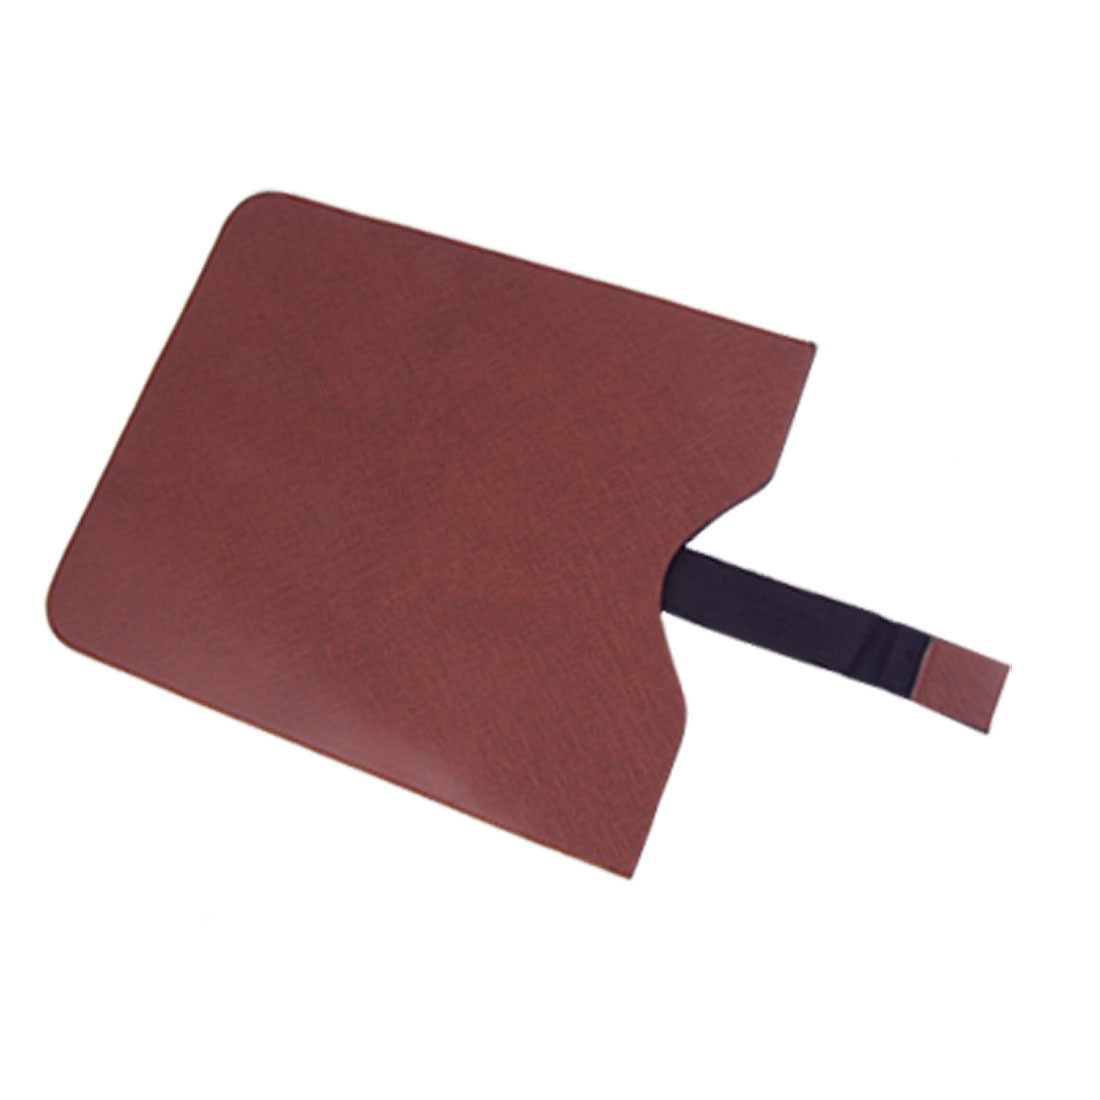 Brown Faux Leather Pull up Pouch Sleeve for iPad 2nd Gen